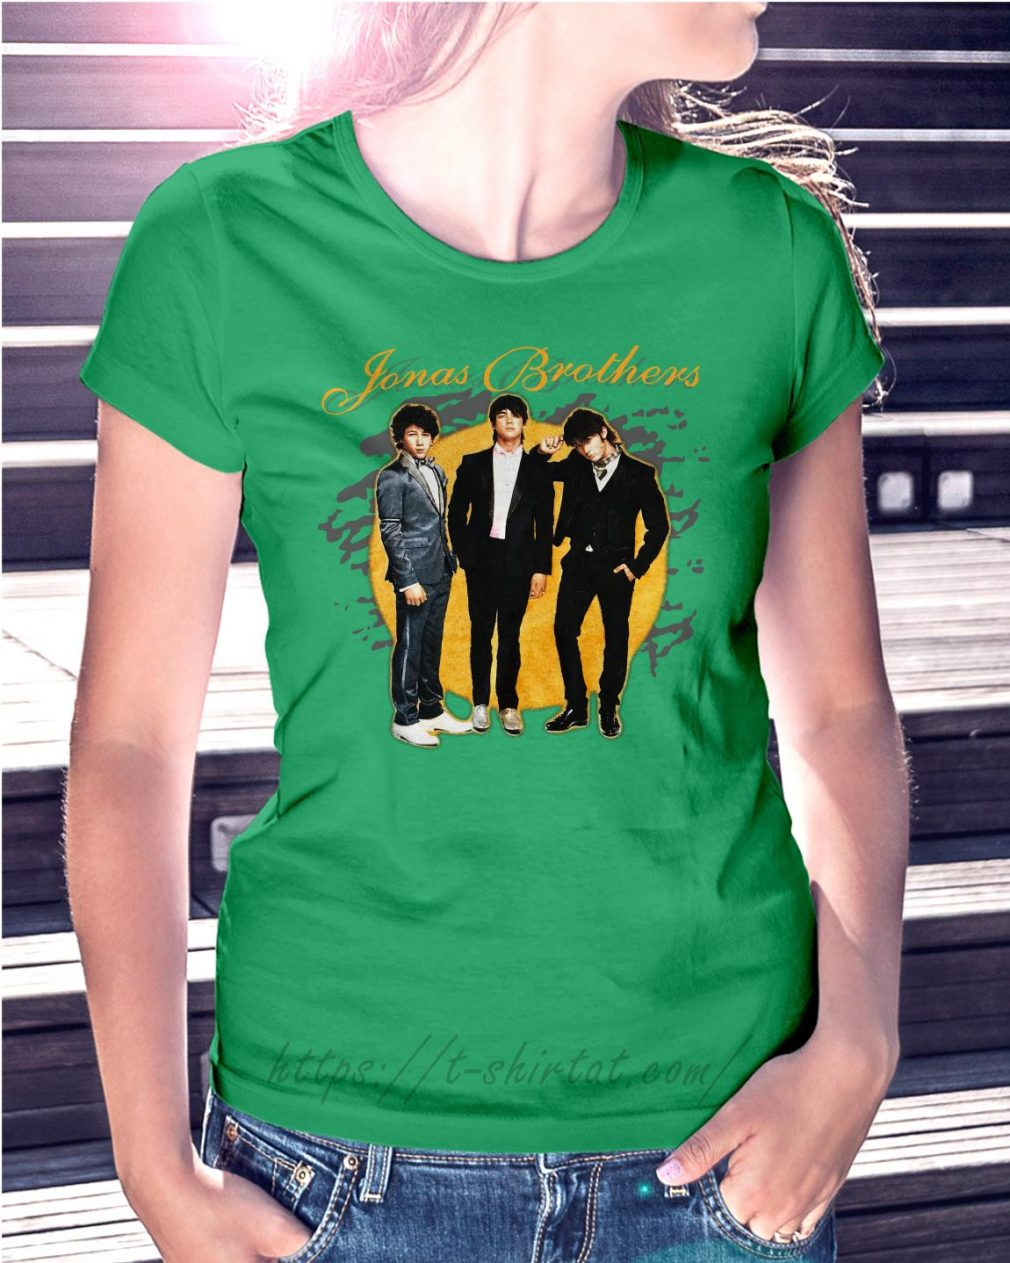 Jonas Brothers concert Ladies tee green